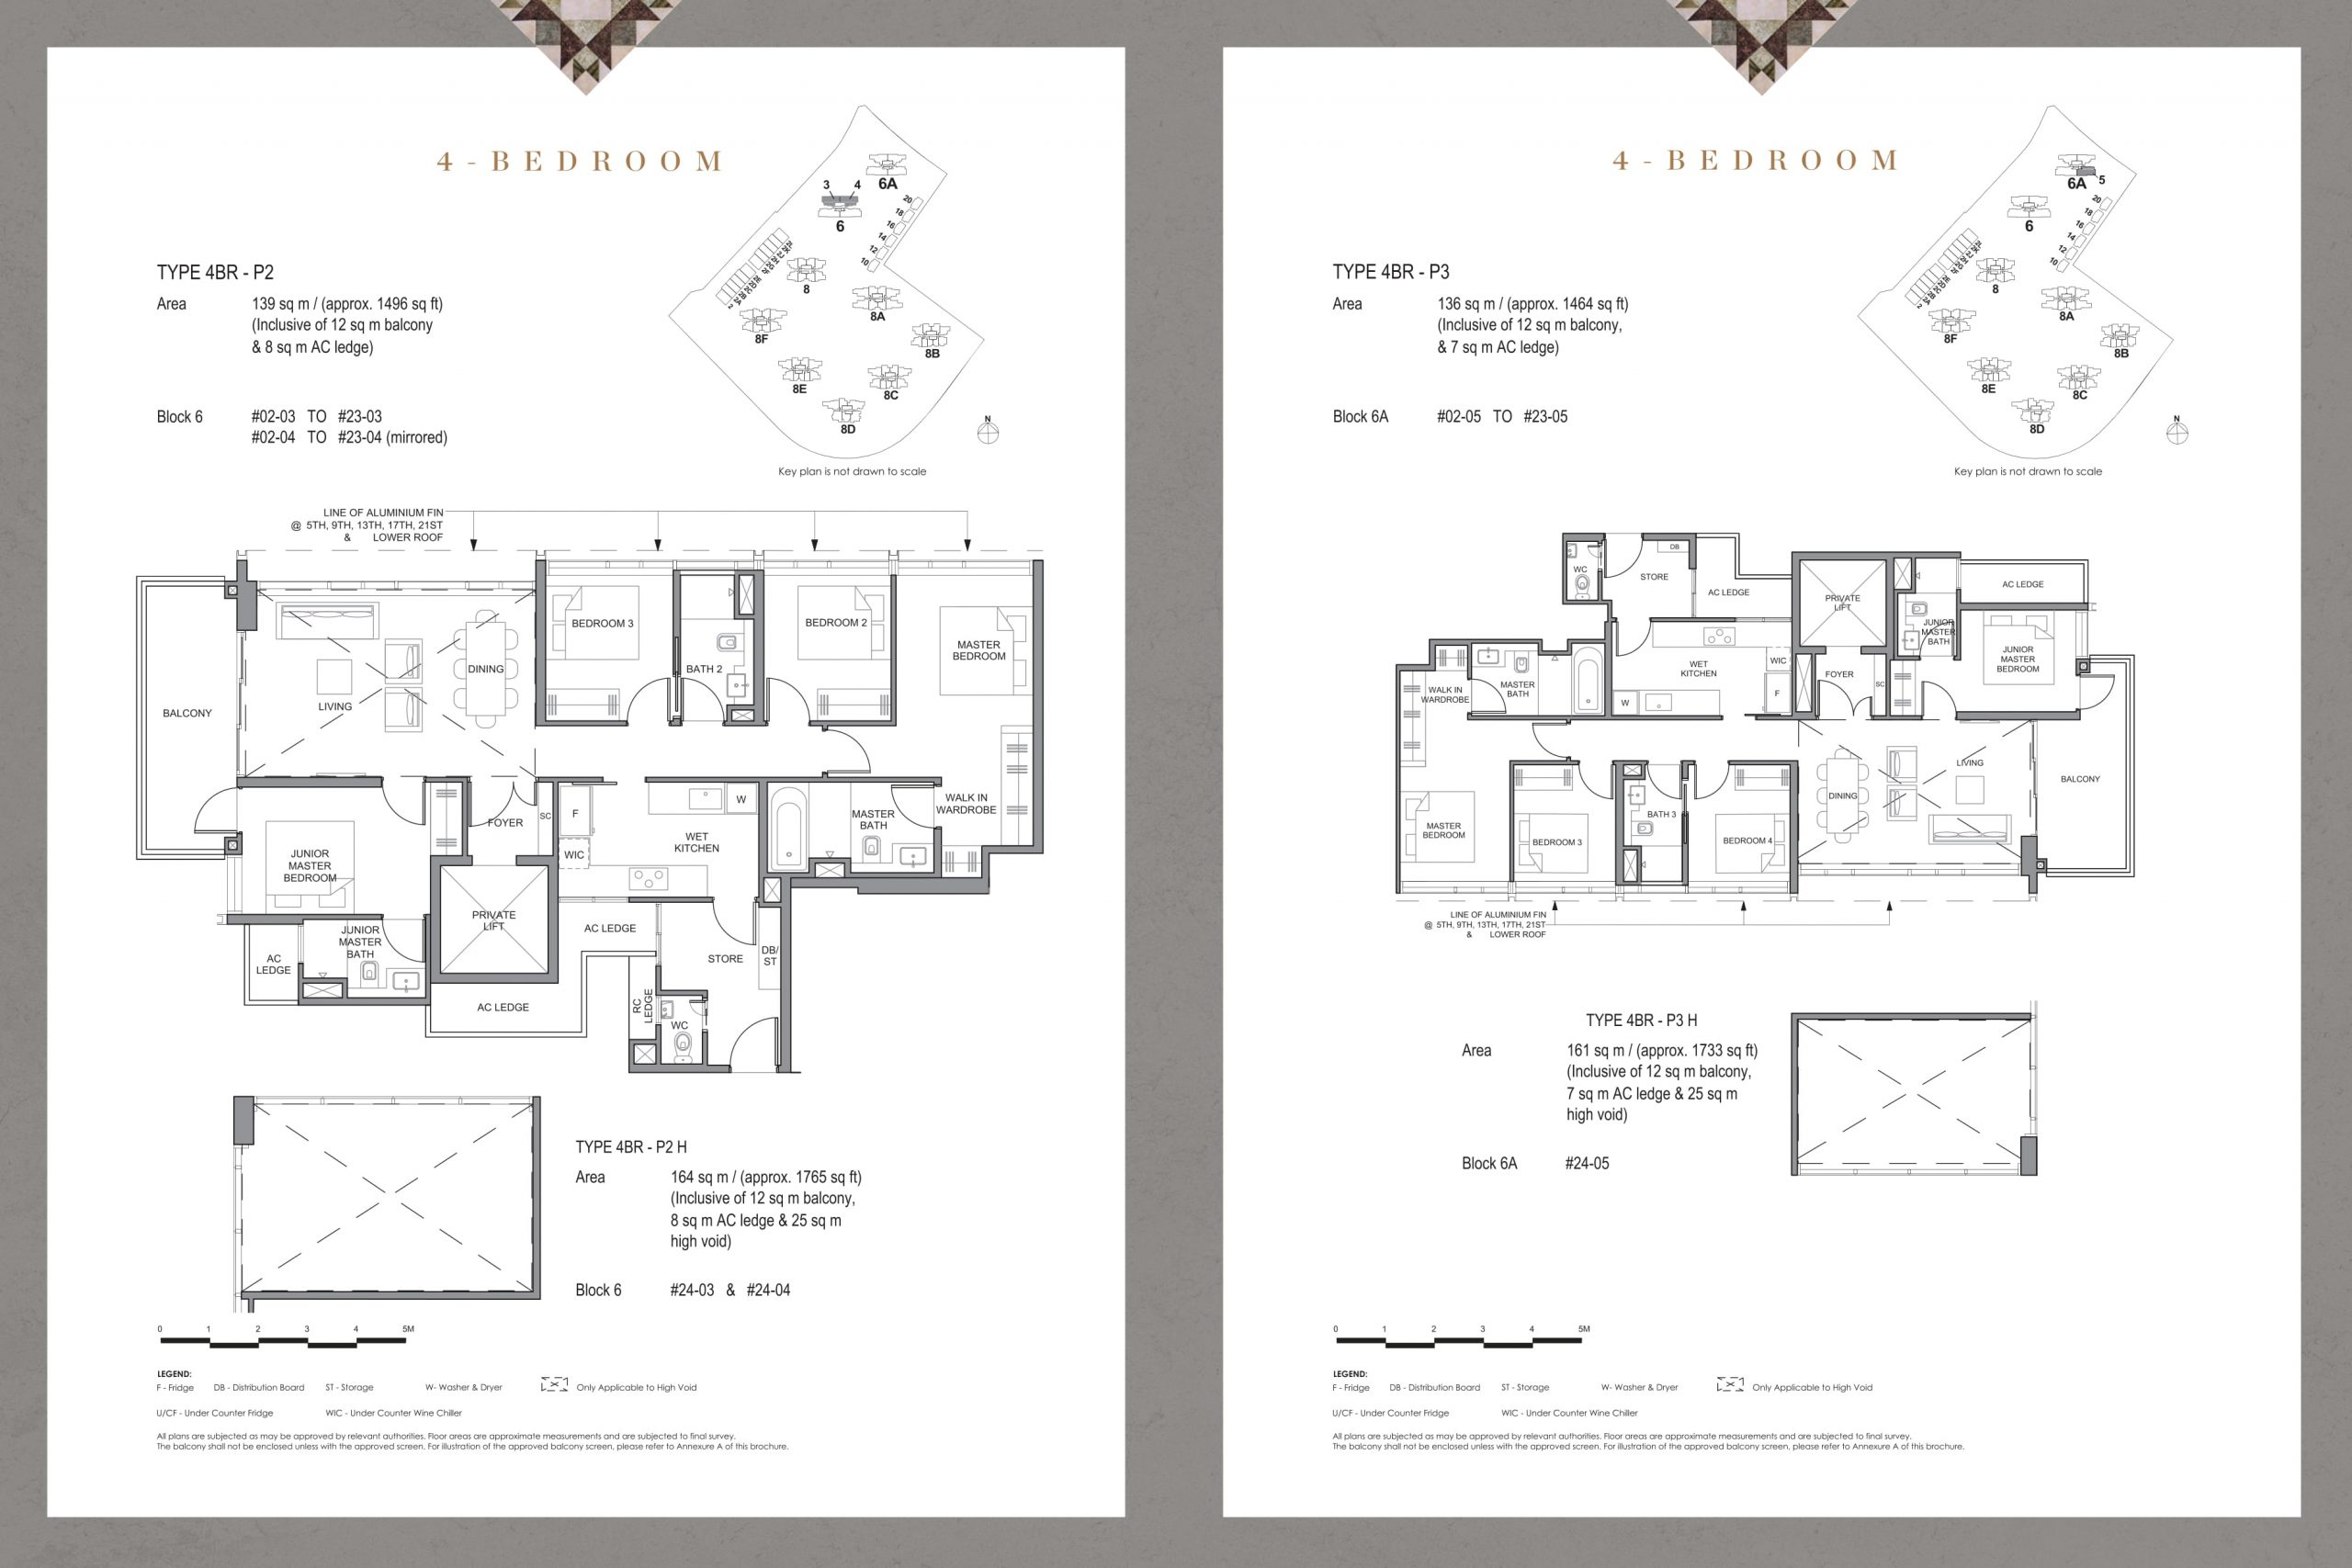 Parc Clematis' signature four-bedroom types